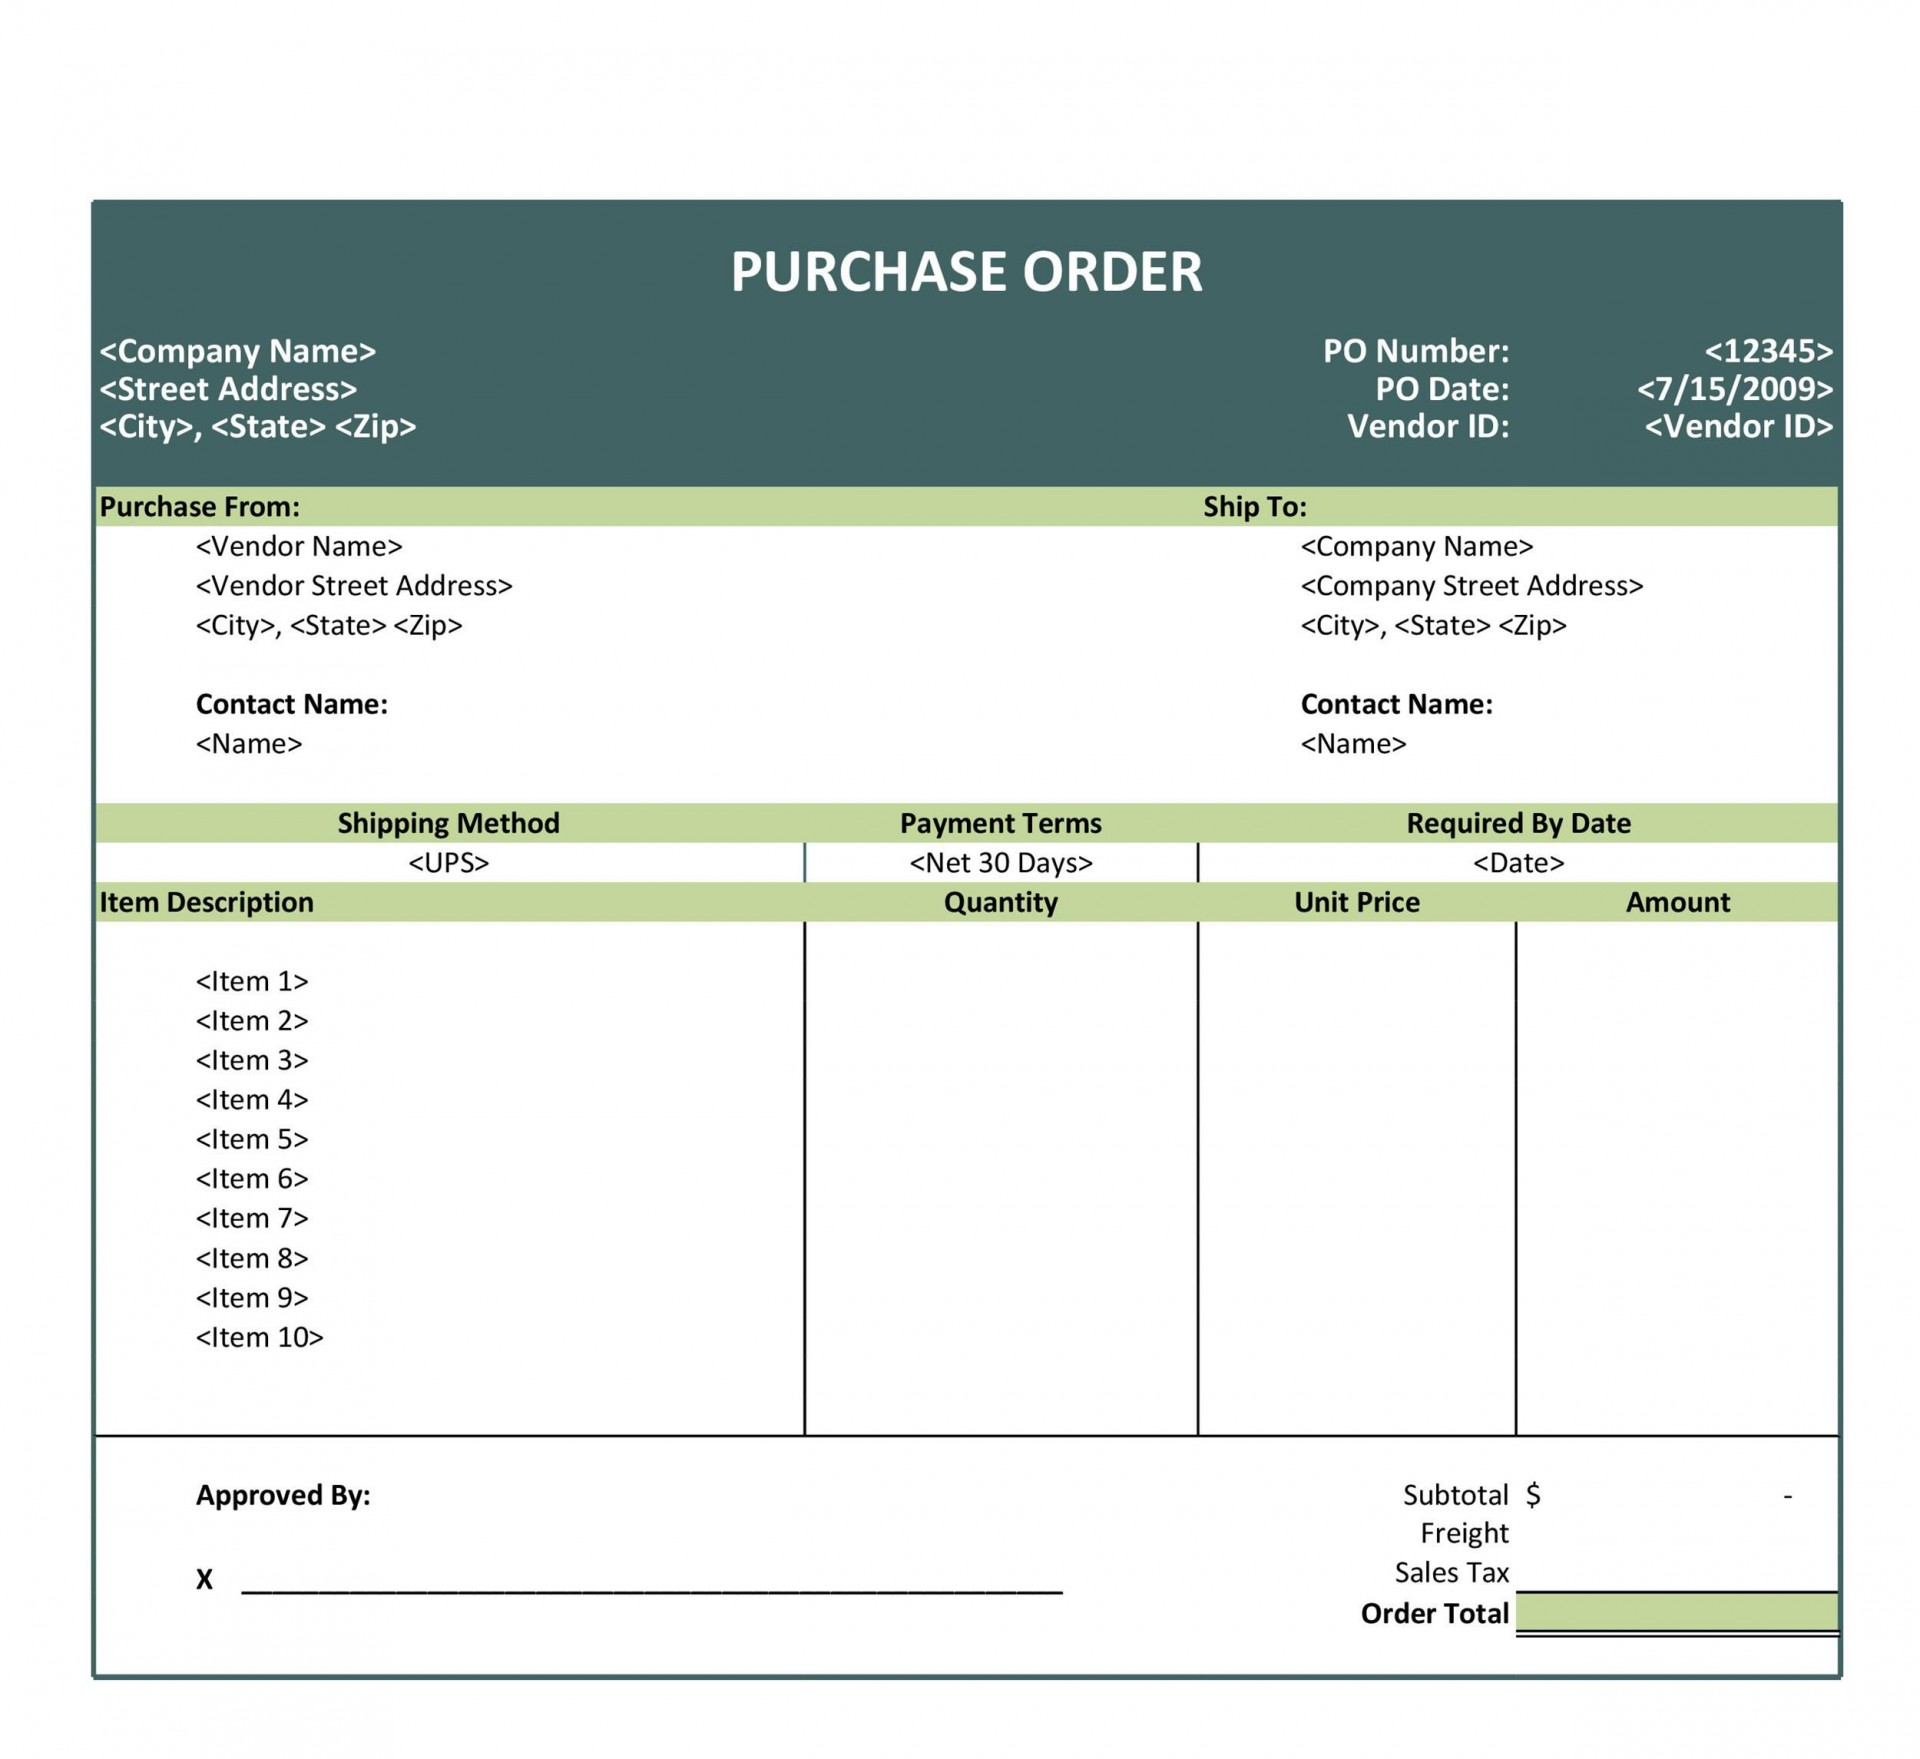 009 Phenomenal Purchase Order Form Template Picture  Templates Free Sample Download Online1920